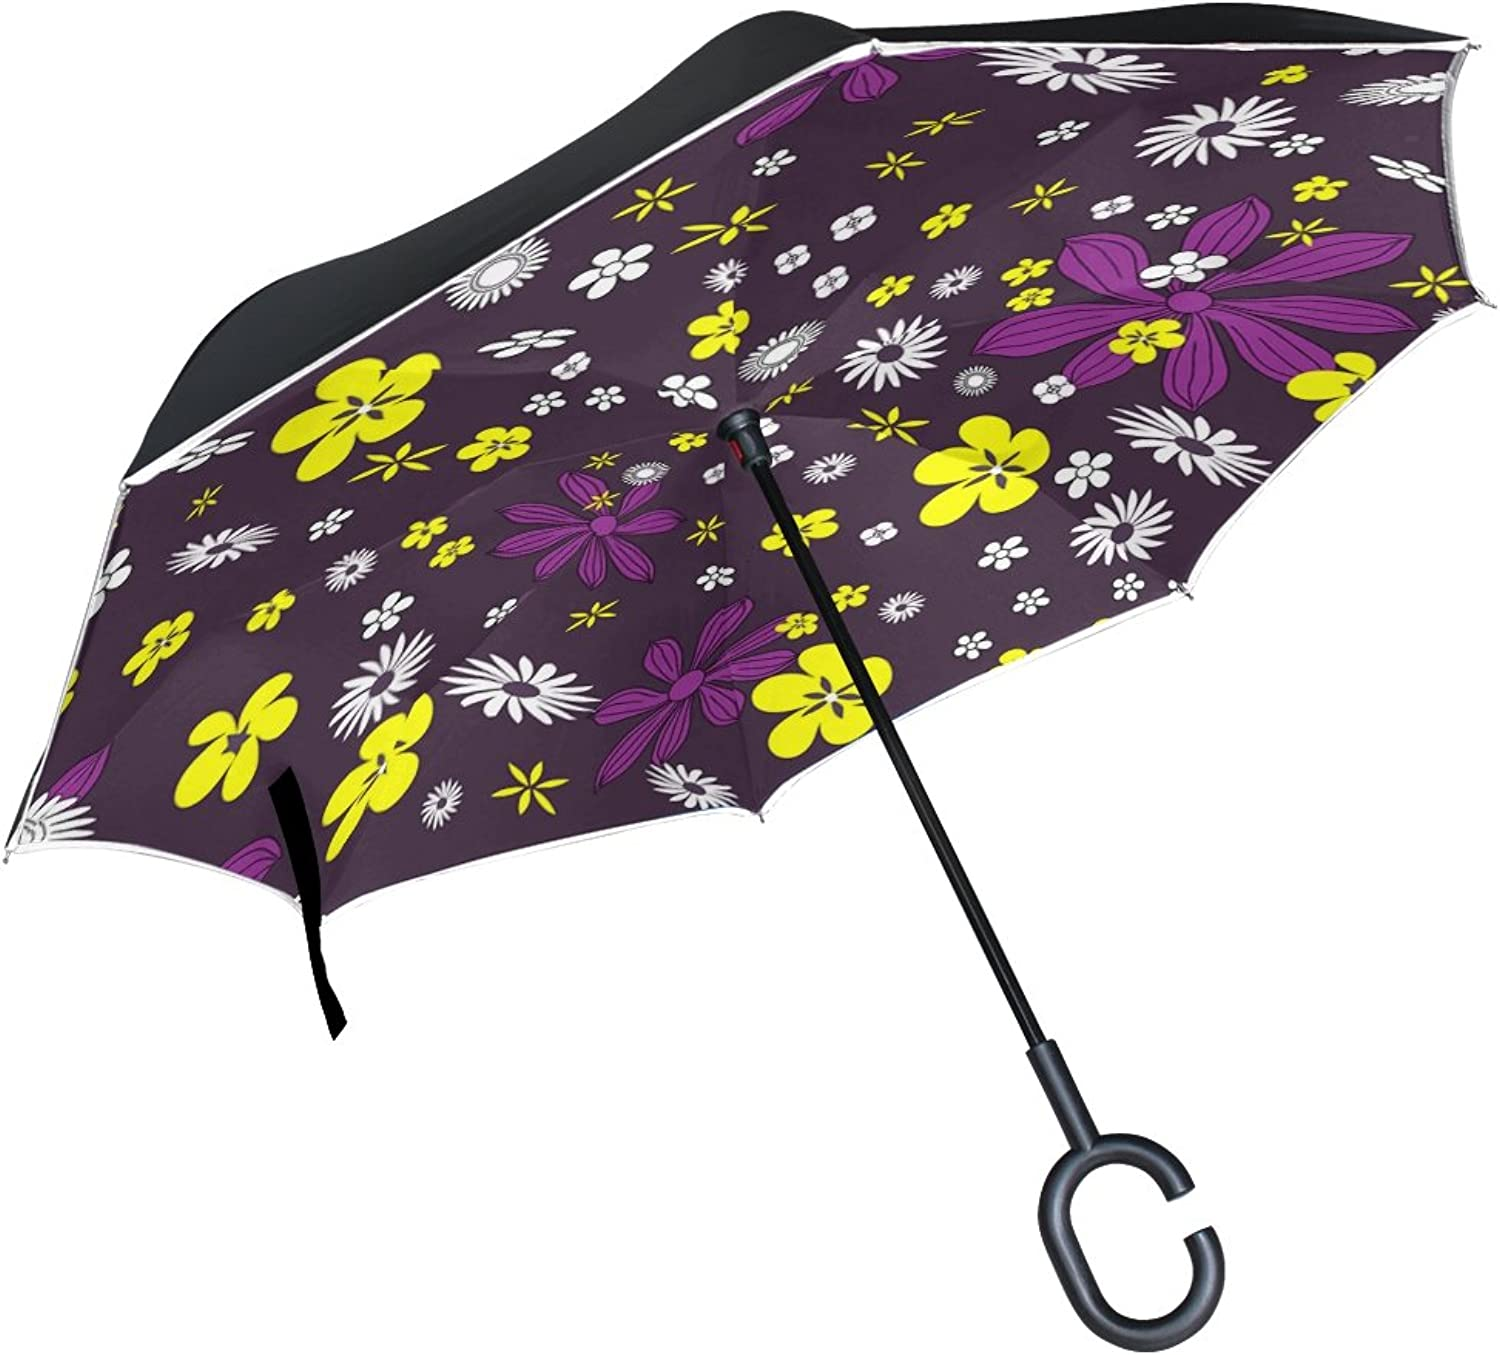 Double Layer Ingreened colorful Design Floral Flowers Pattern Umbrellas Reverse Folding Umbrella Windproof Uv Predection Big Straight Umbrella for Car Rain Outdoor with CShaped Handle